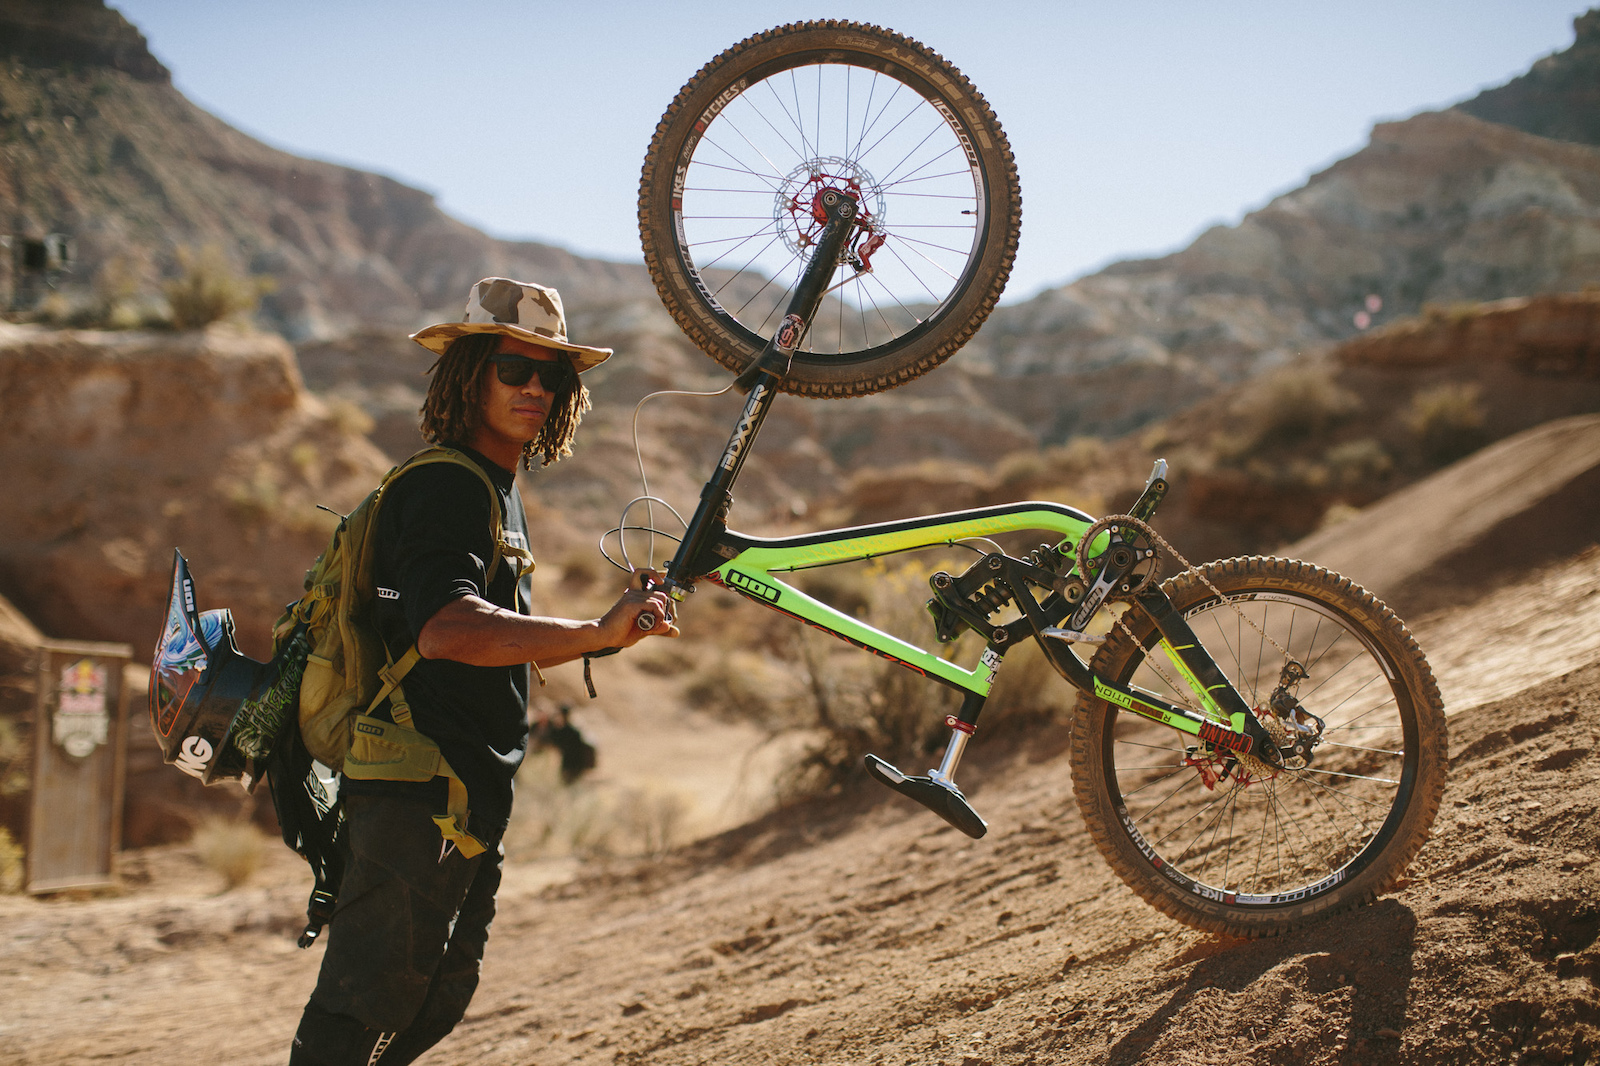 Nic Pescetto at RedBull Rampage 2015 Virgin Utah USA